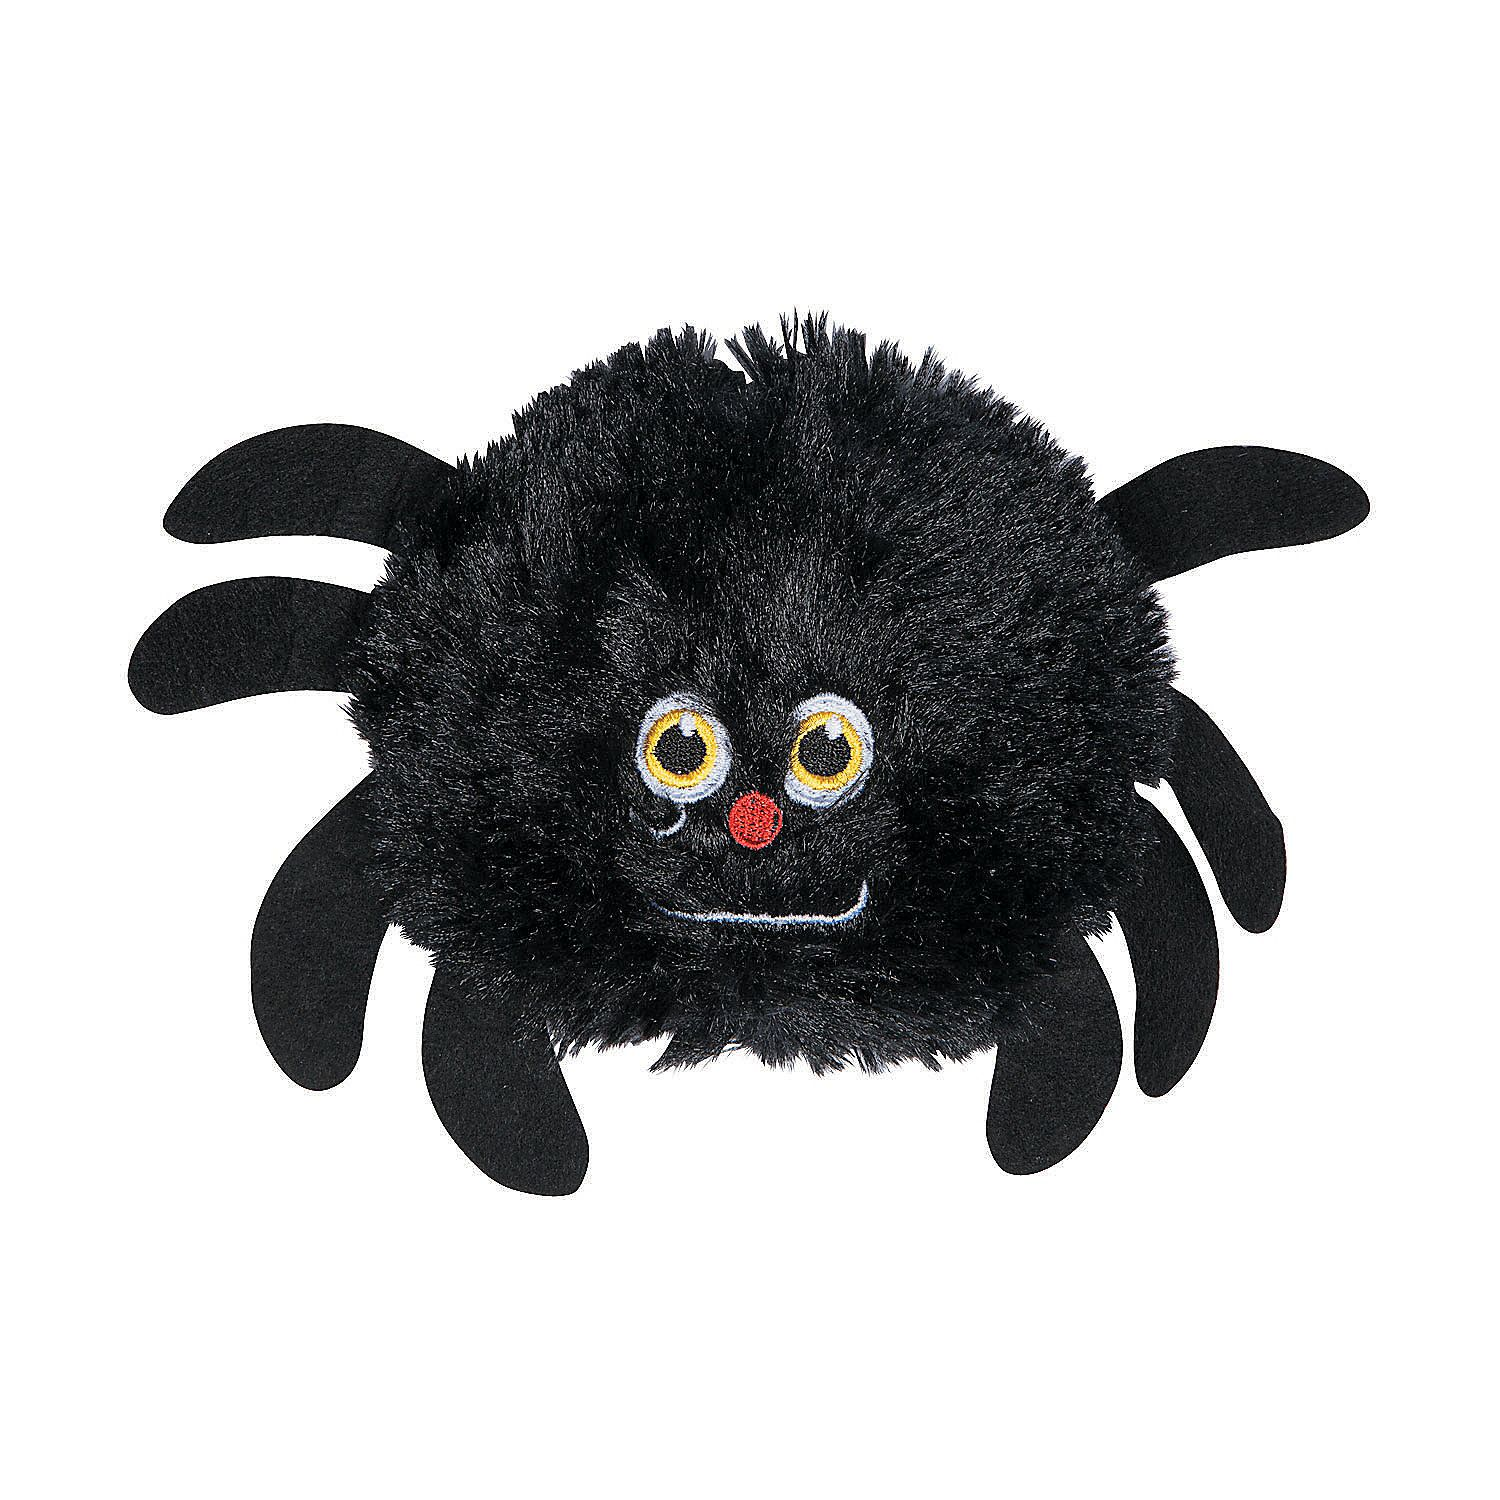 Plush Stuffed Spiders Halloween animals, Halloween